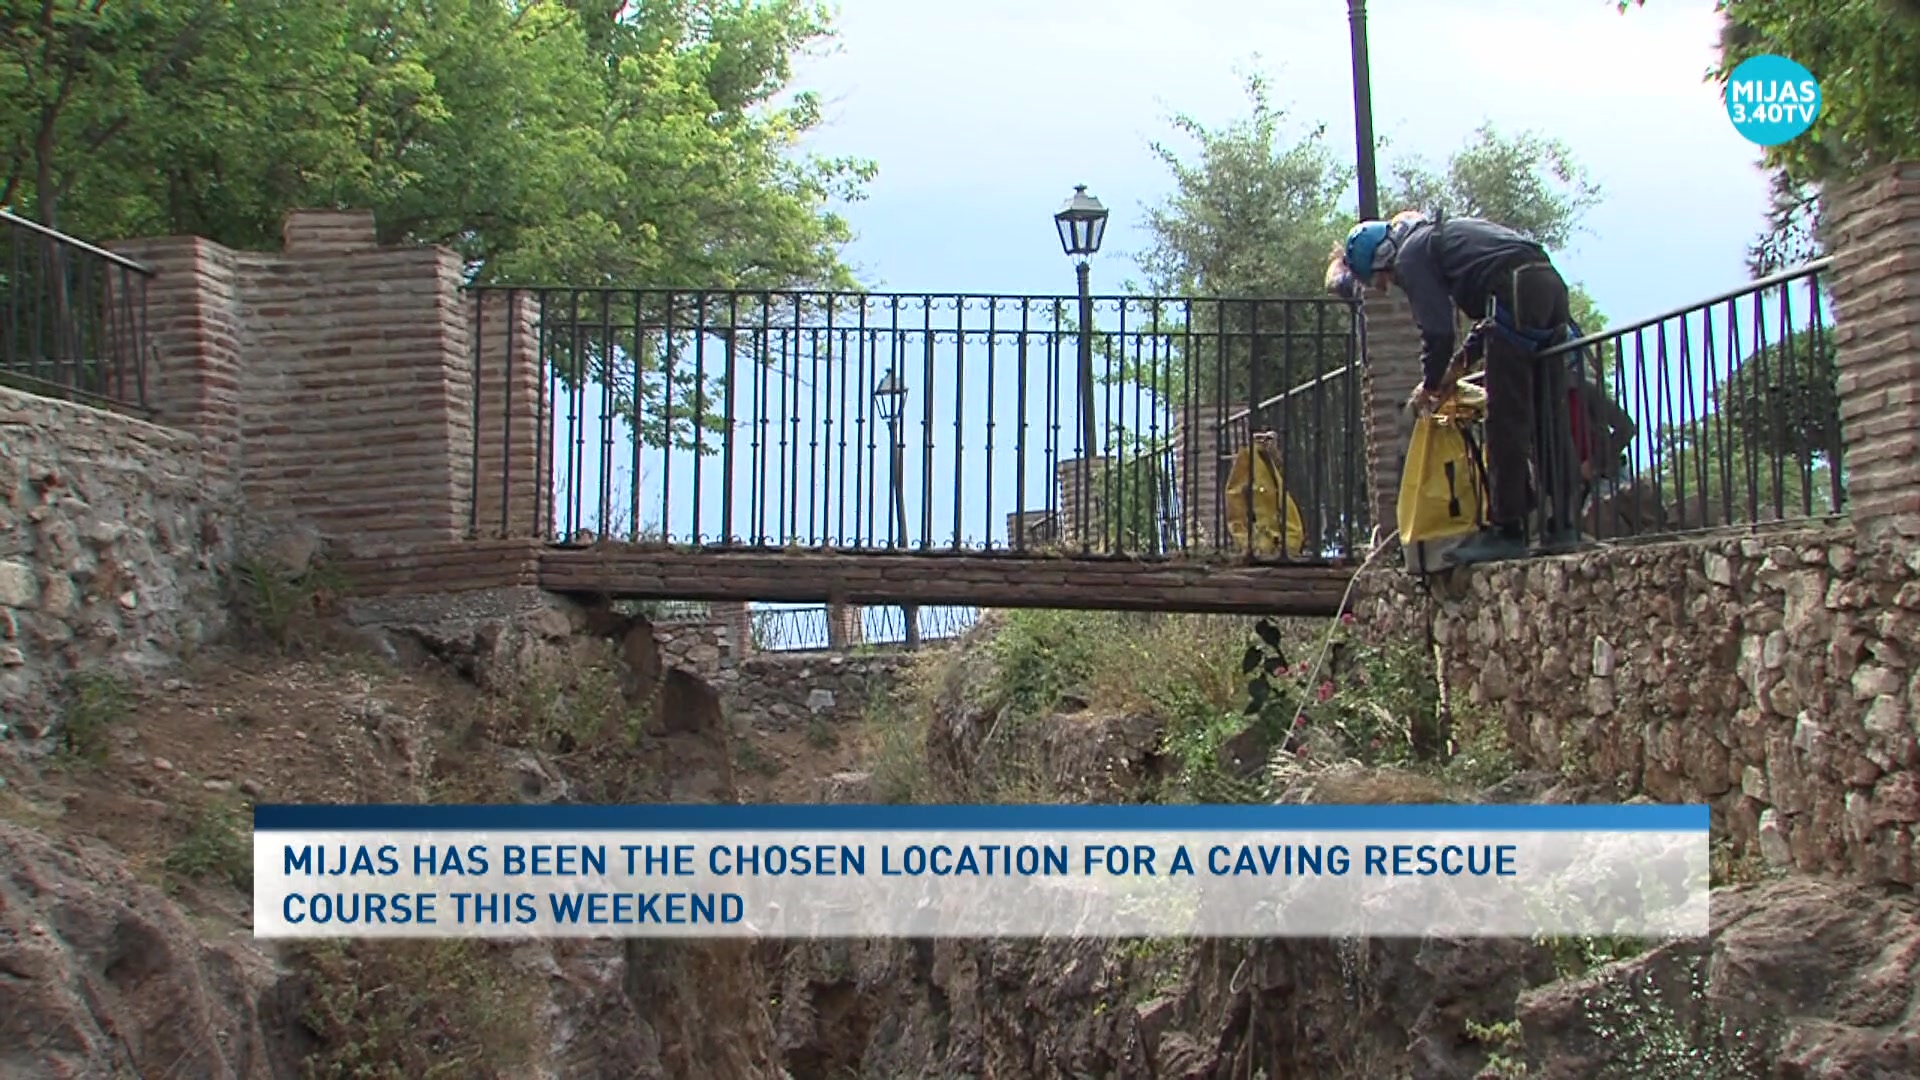 Professional cavers are updated in Mijas on how to react in the case of an emergency